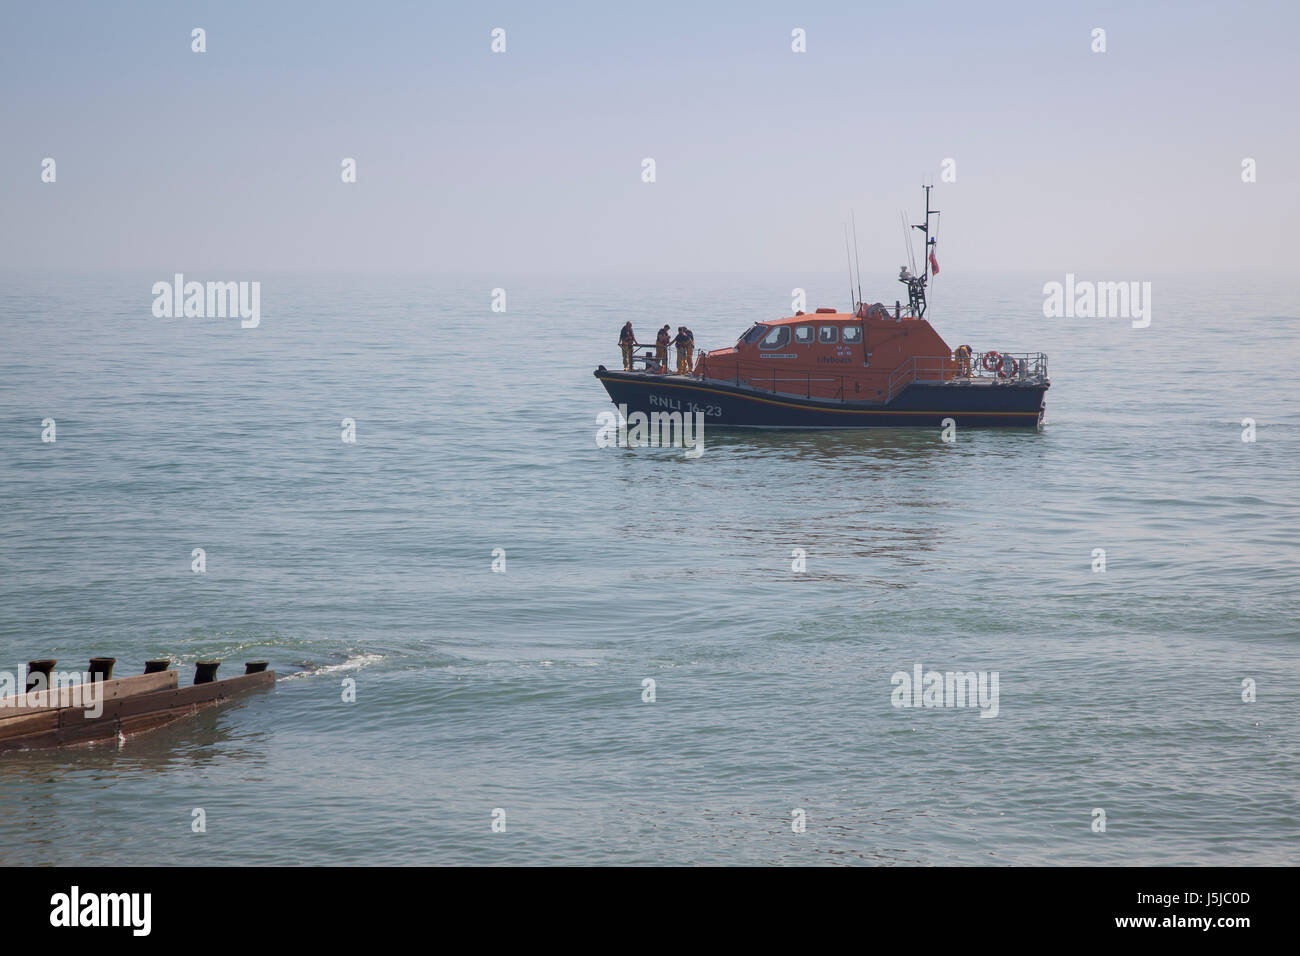 RNLI Lifeboat at Eastbourne Stock Photo